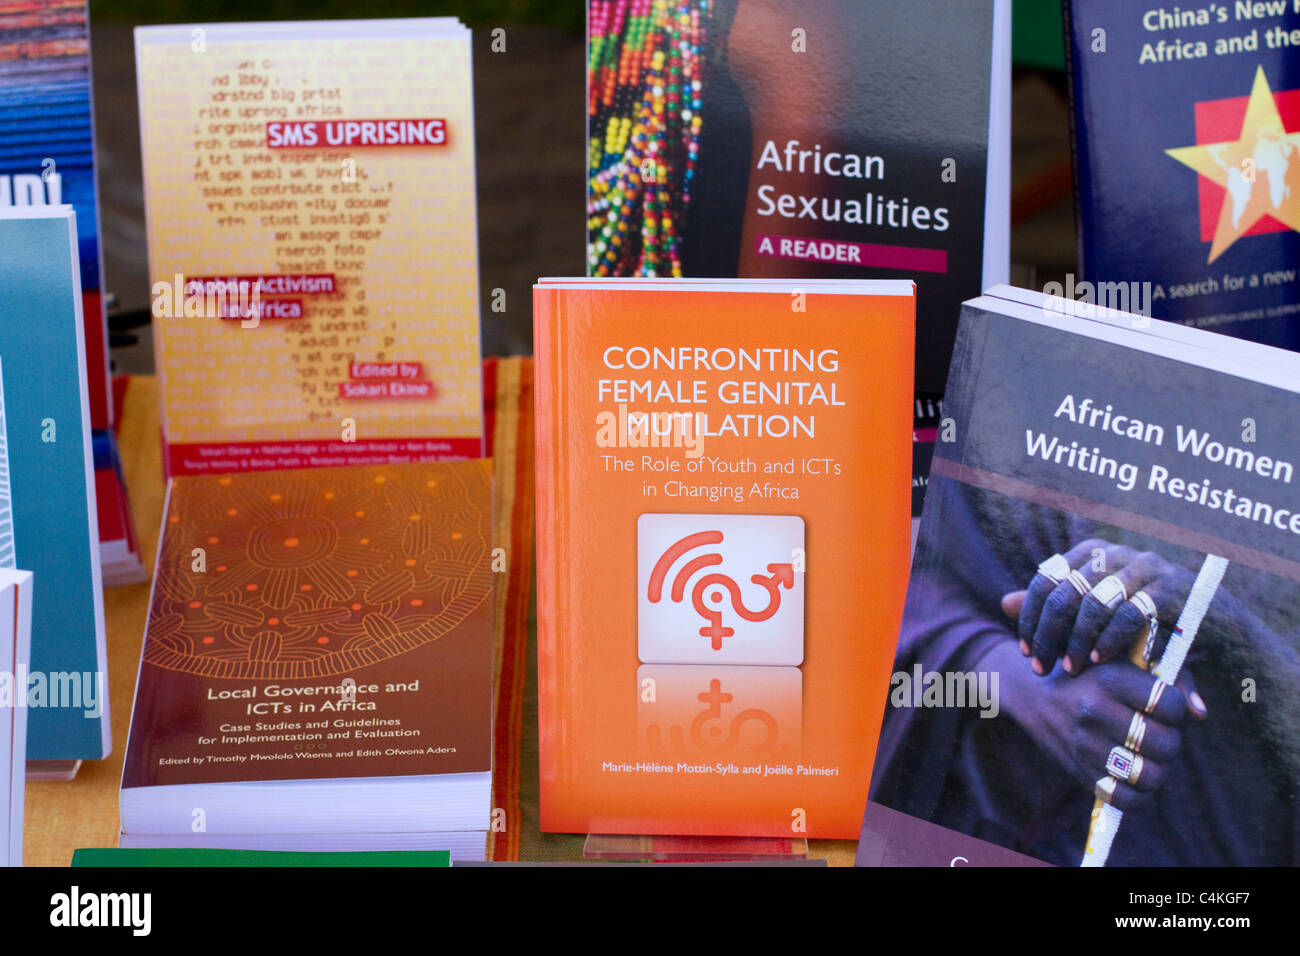 African Books, SMS Uprising, confronting female genital mutilation,  at Book stall selling paperback books at Africa - Stock Image